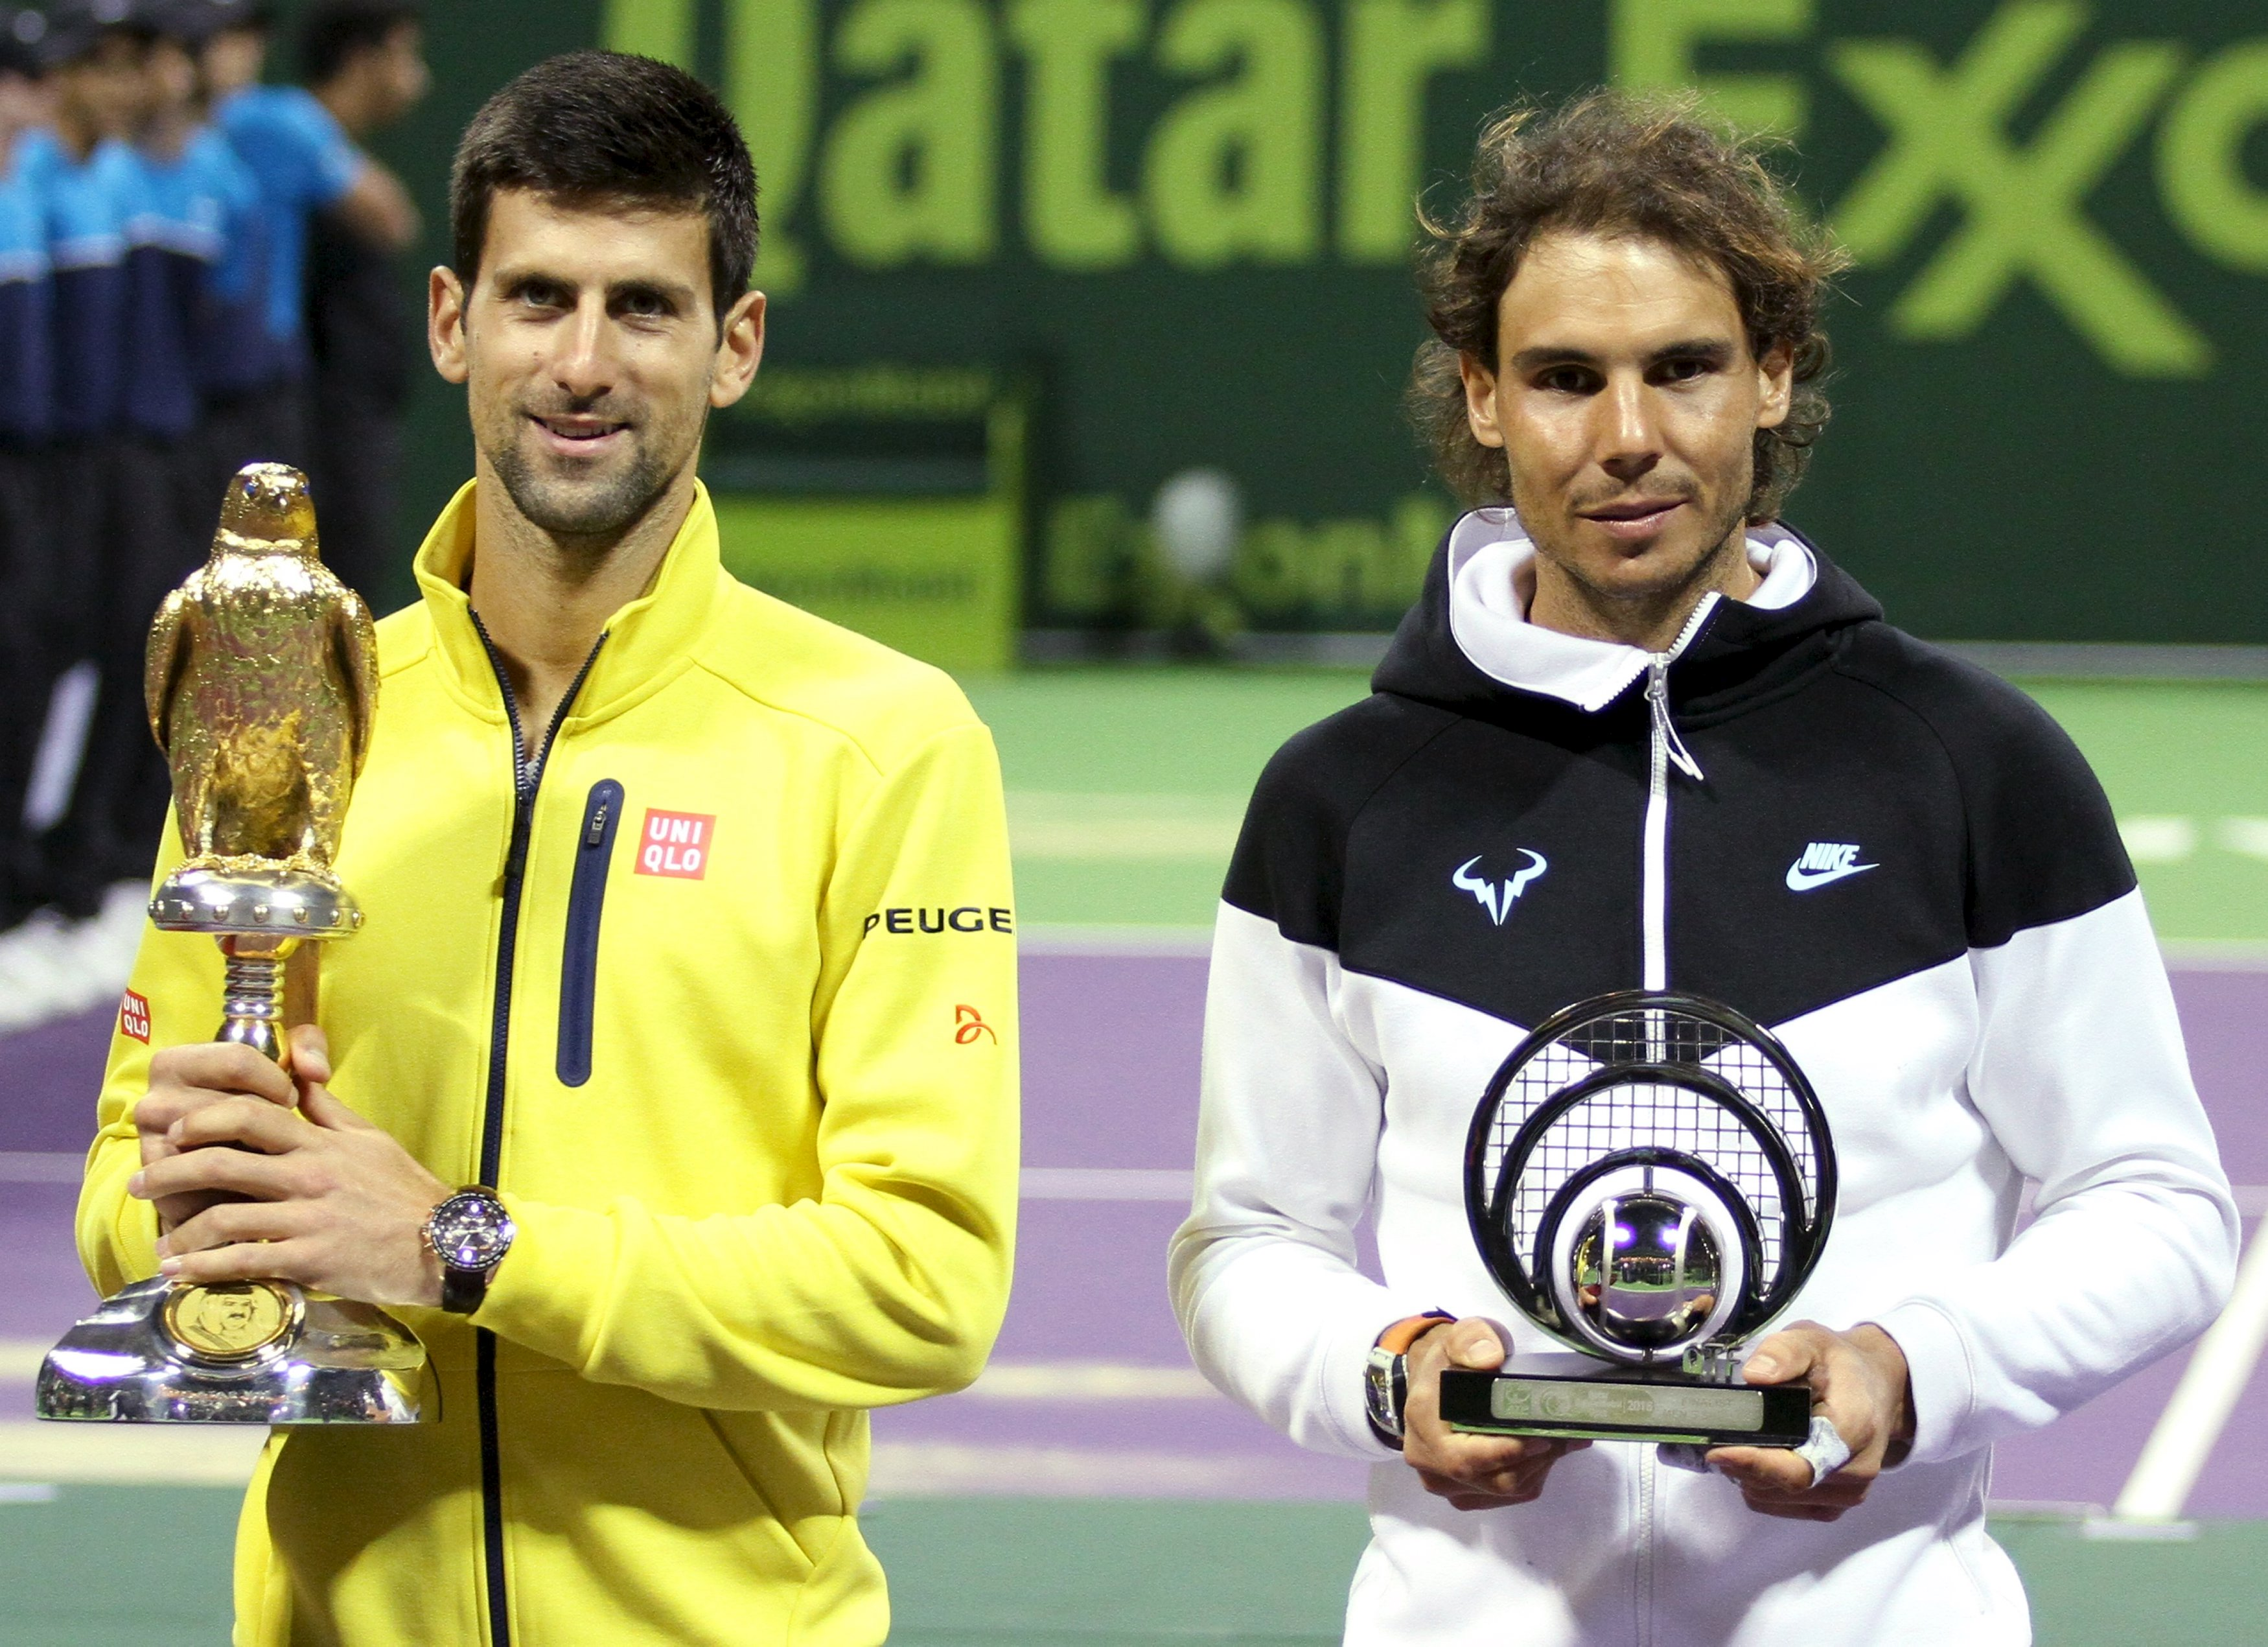 Novak Djokovic (left) of Serbia holds the trophy as he stands next to second place Rafael Nadal of Spain after winning his Qatar Open men's single tennis final match in Doha, Qatar, January 9, 2016. Photo: Reuters